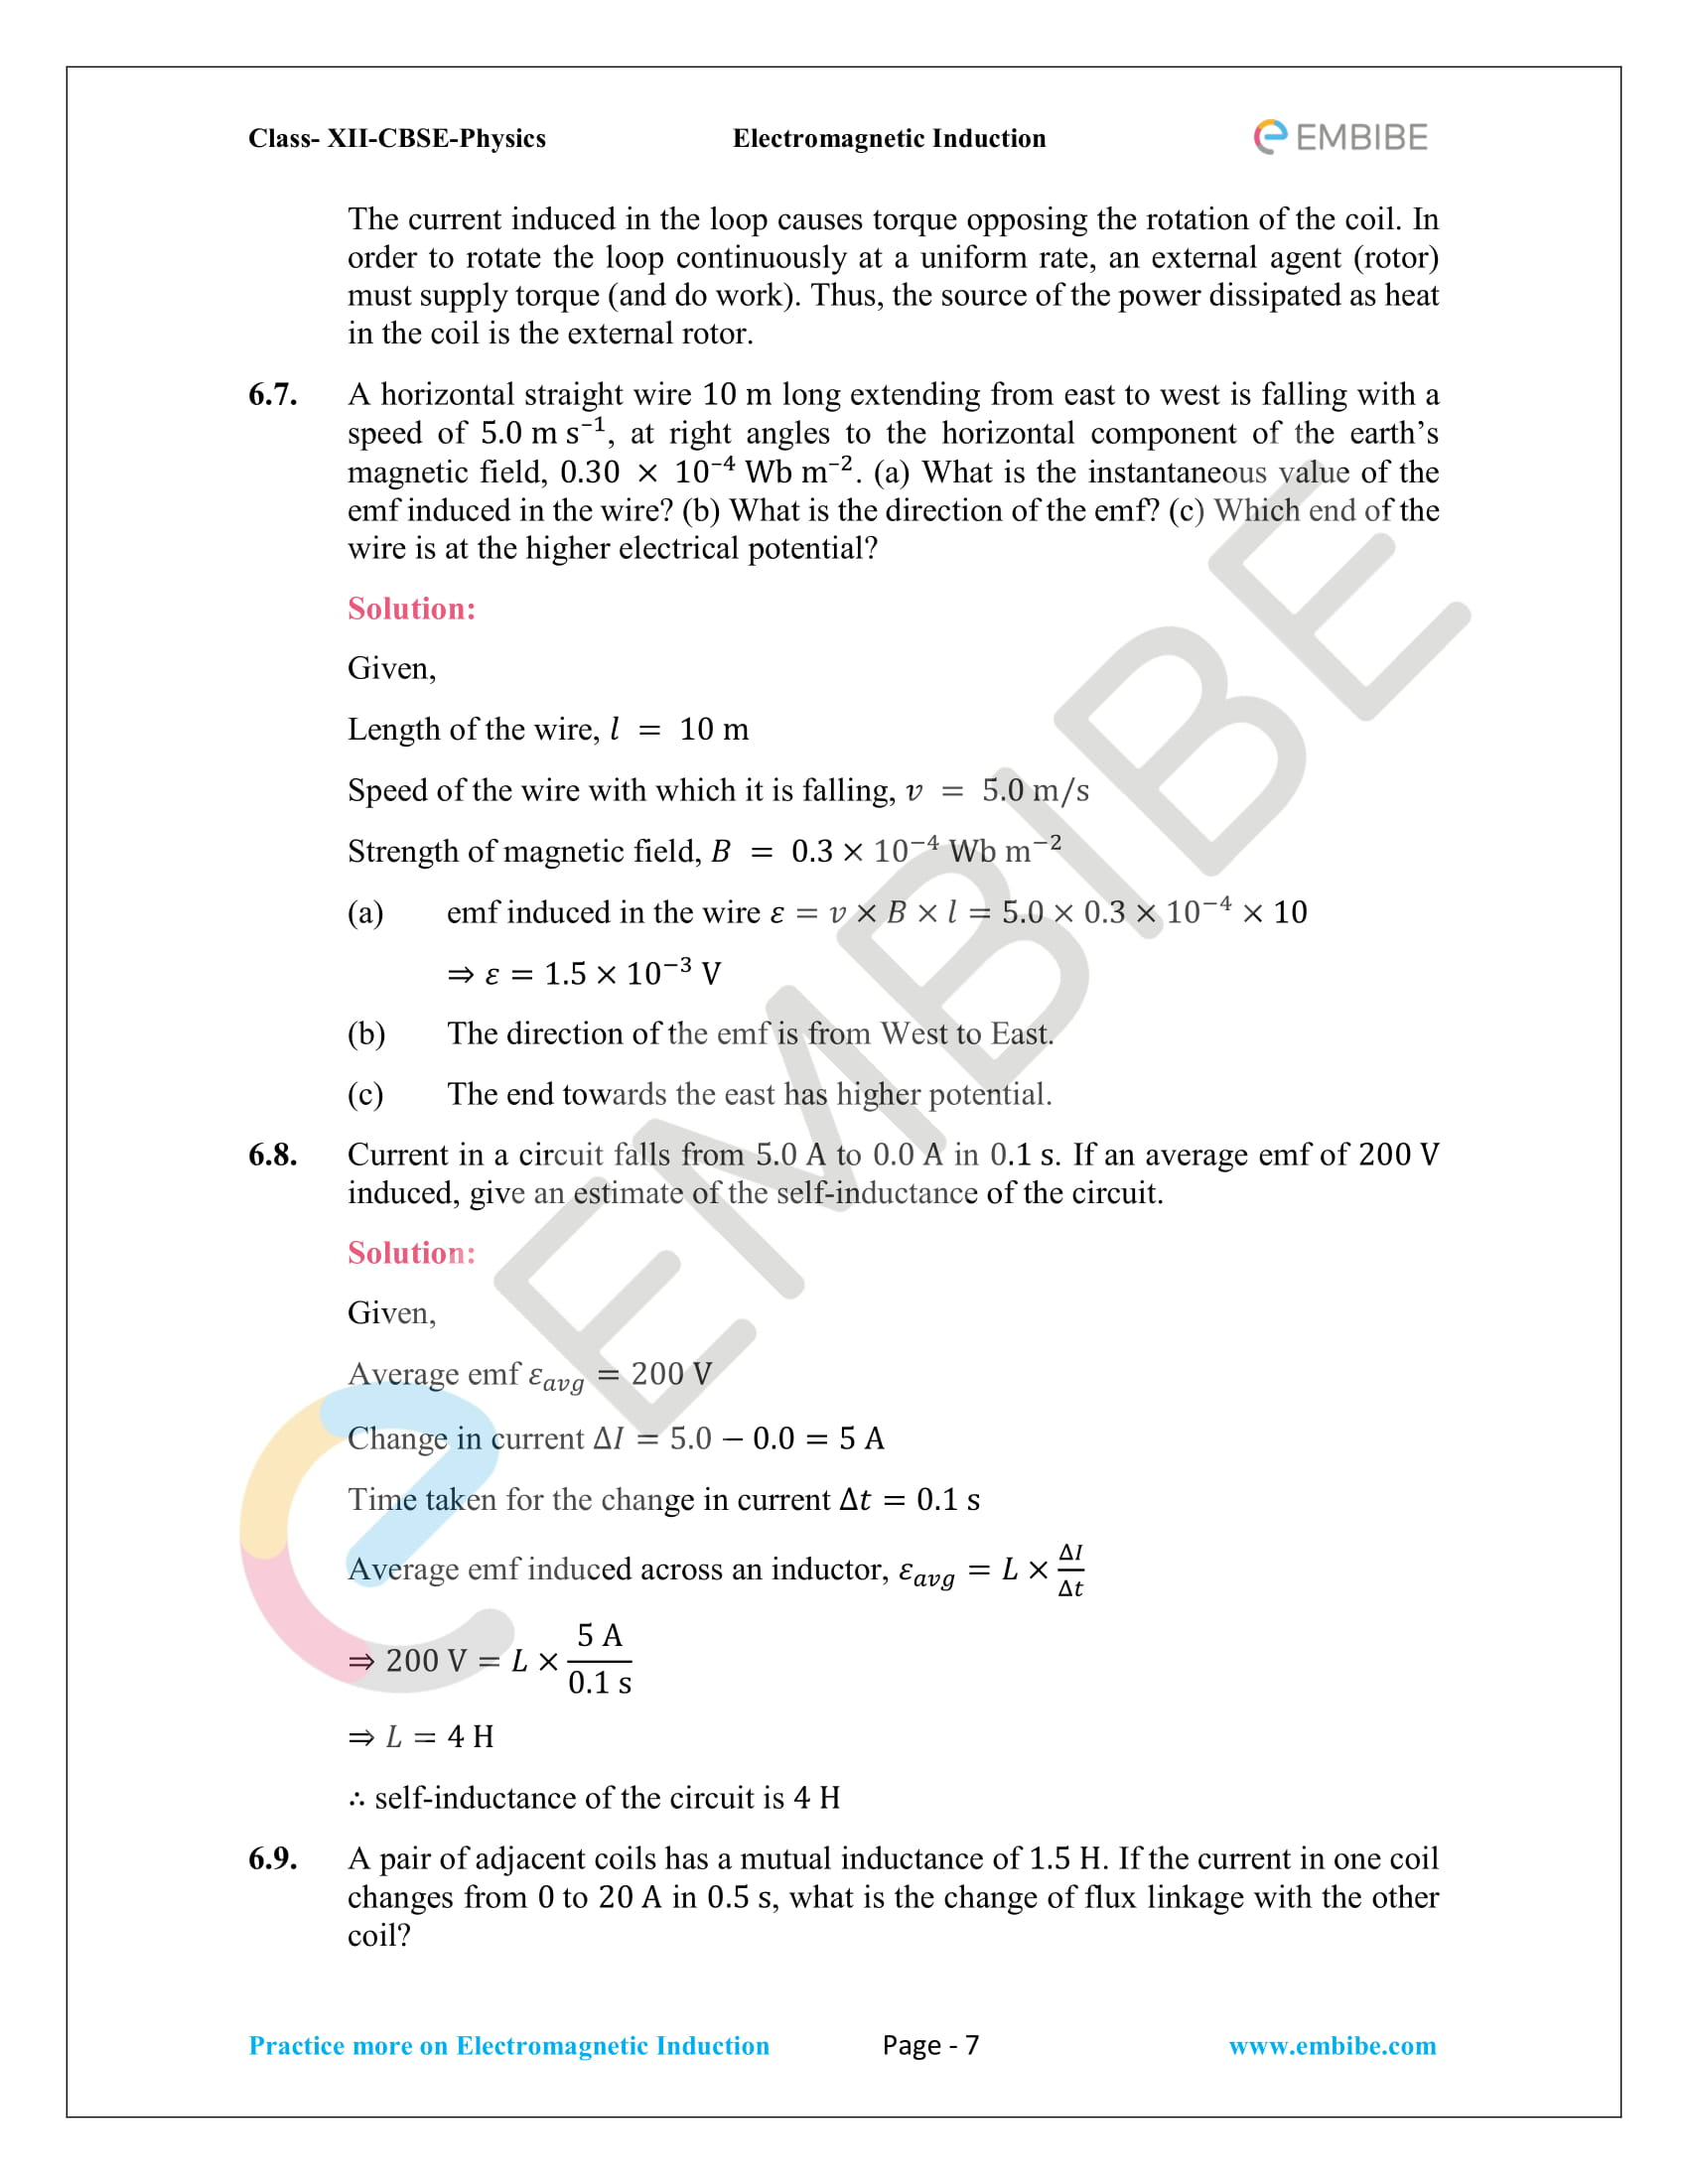 CBSE NCERT Solutions Class 12 Physics Chapter 6 PDF - Electromagnetic Induction - 7